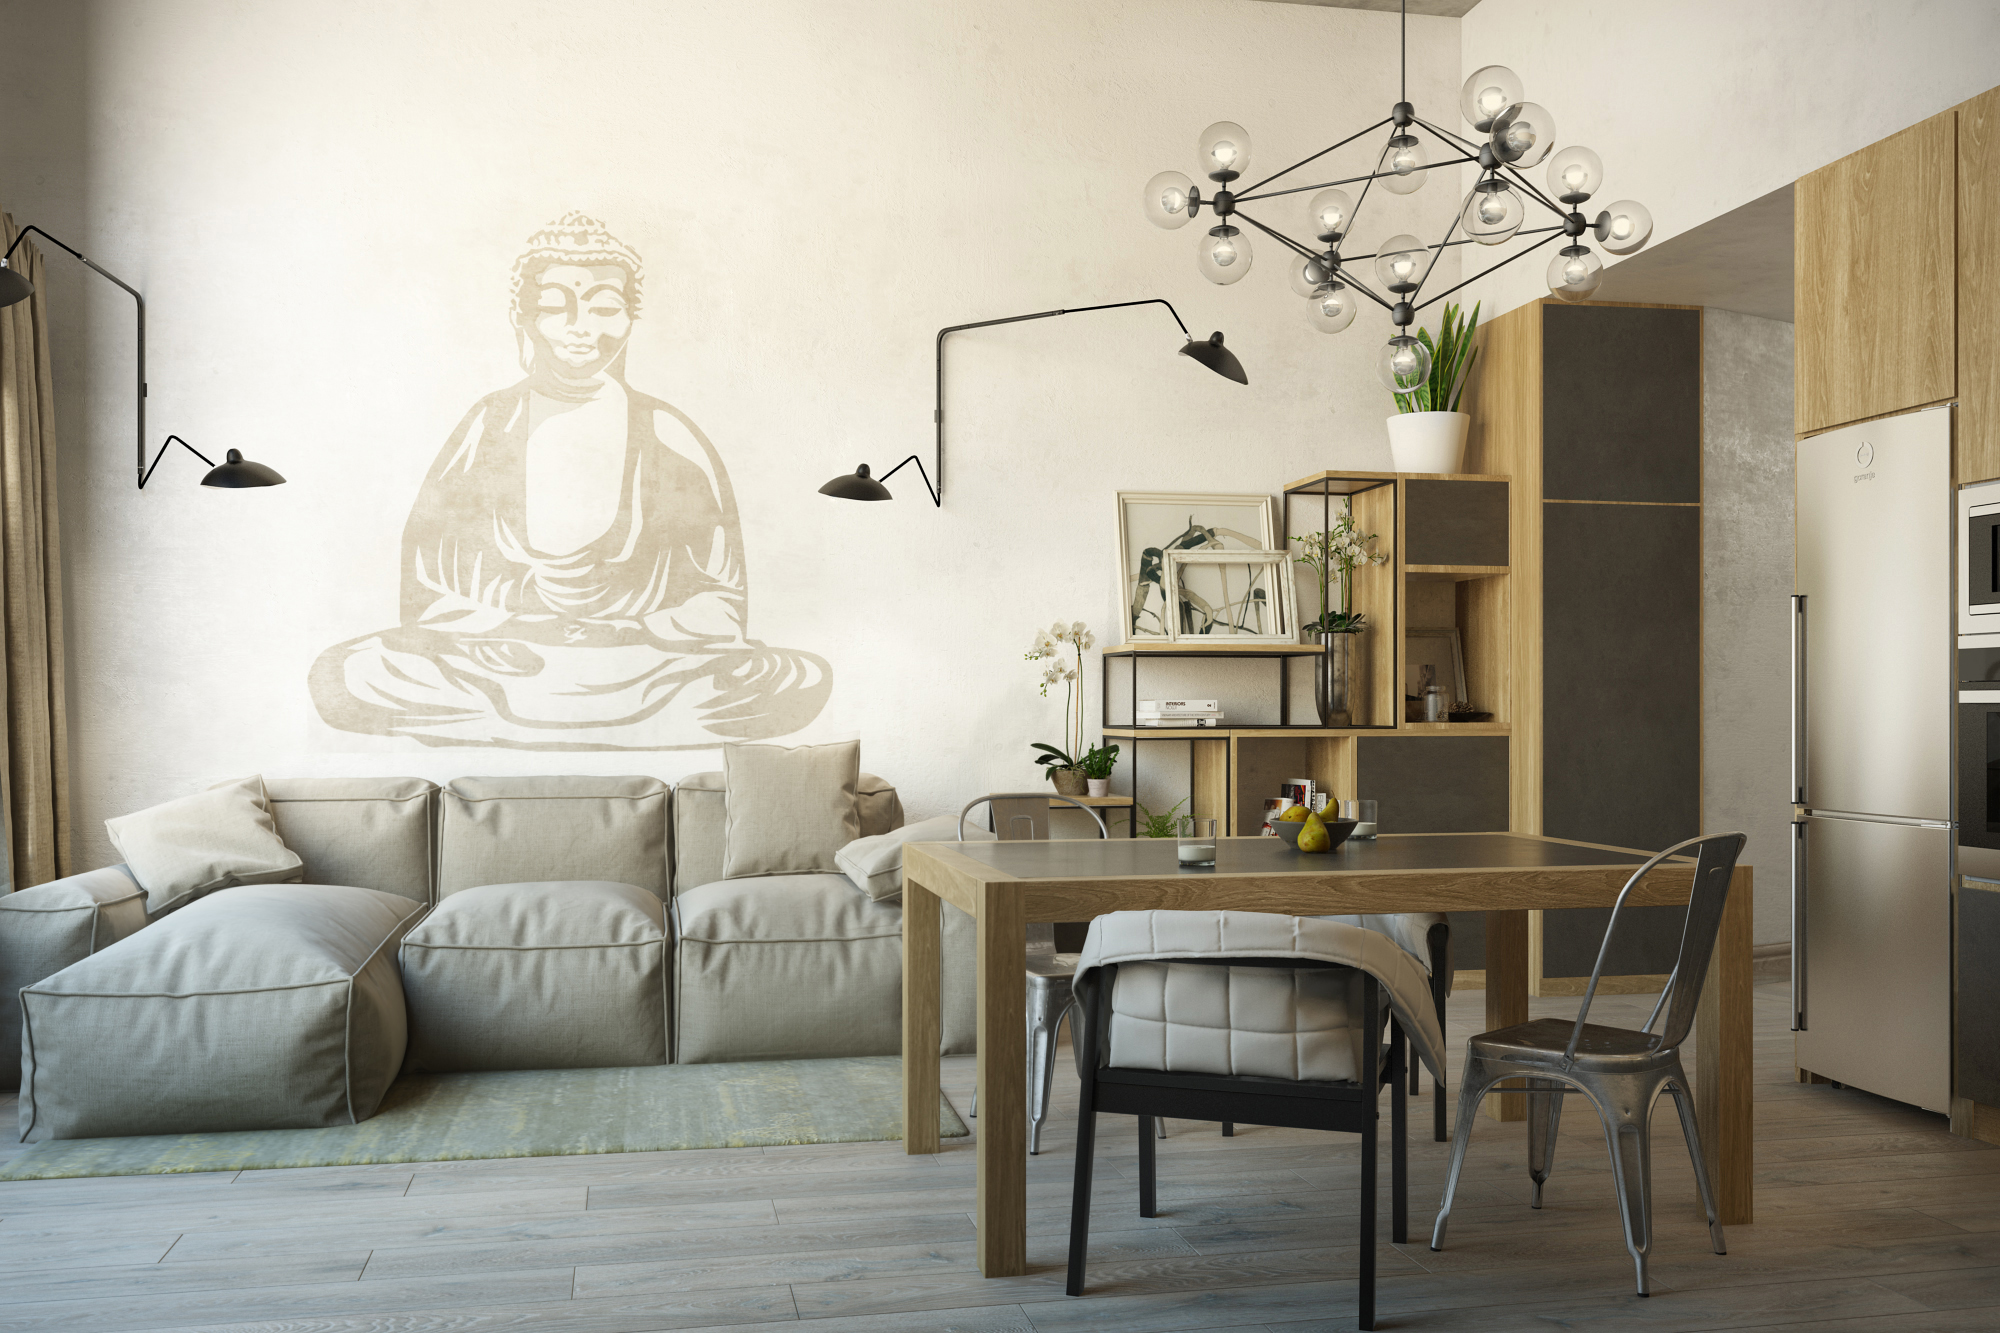 Zen inspired interior design | Freelancers 3D